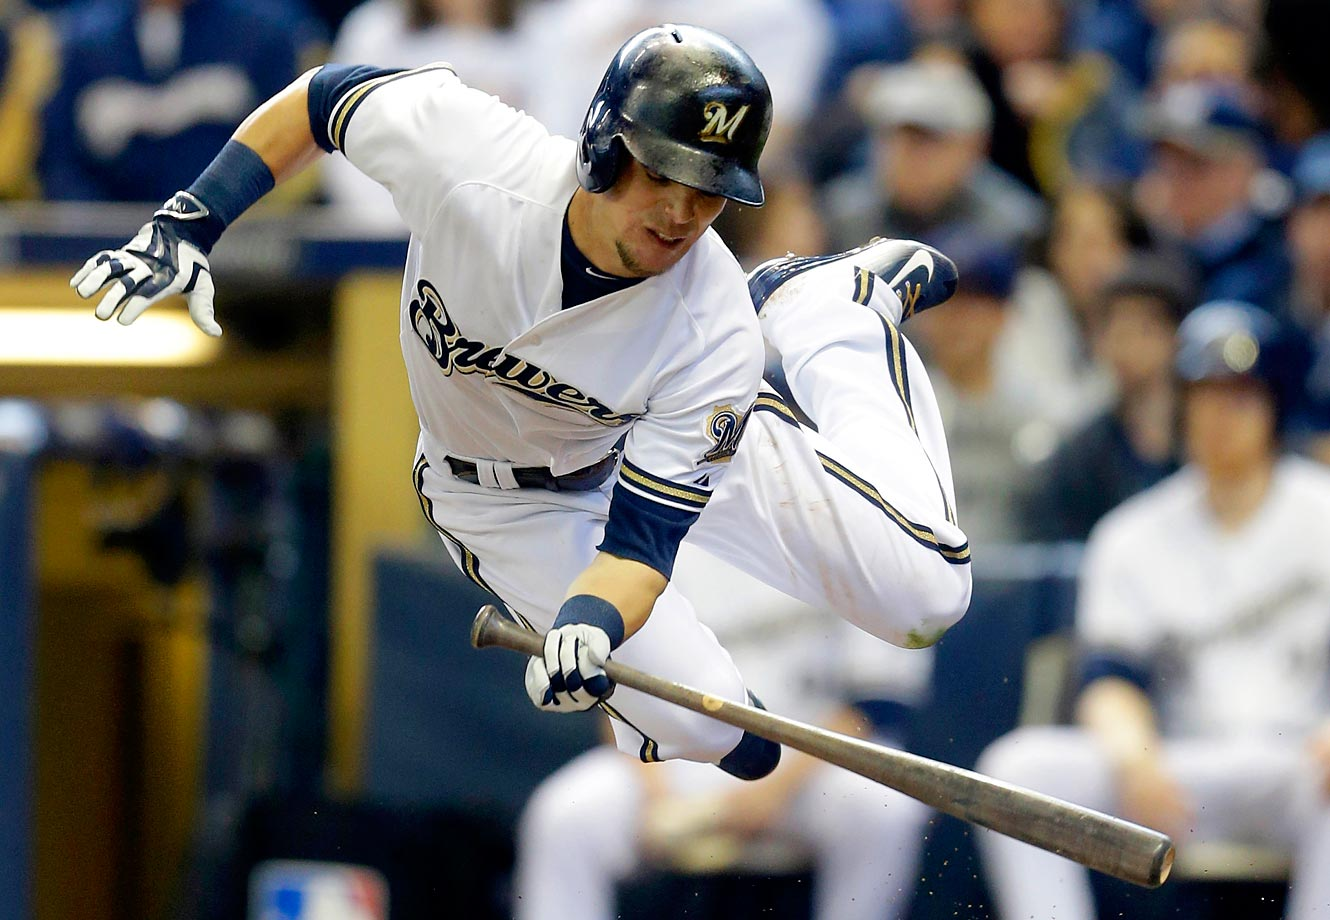 Scooter Gennett of the Brewers makes a great effort but still gets hit by the pitch against the Colorado Rockies.